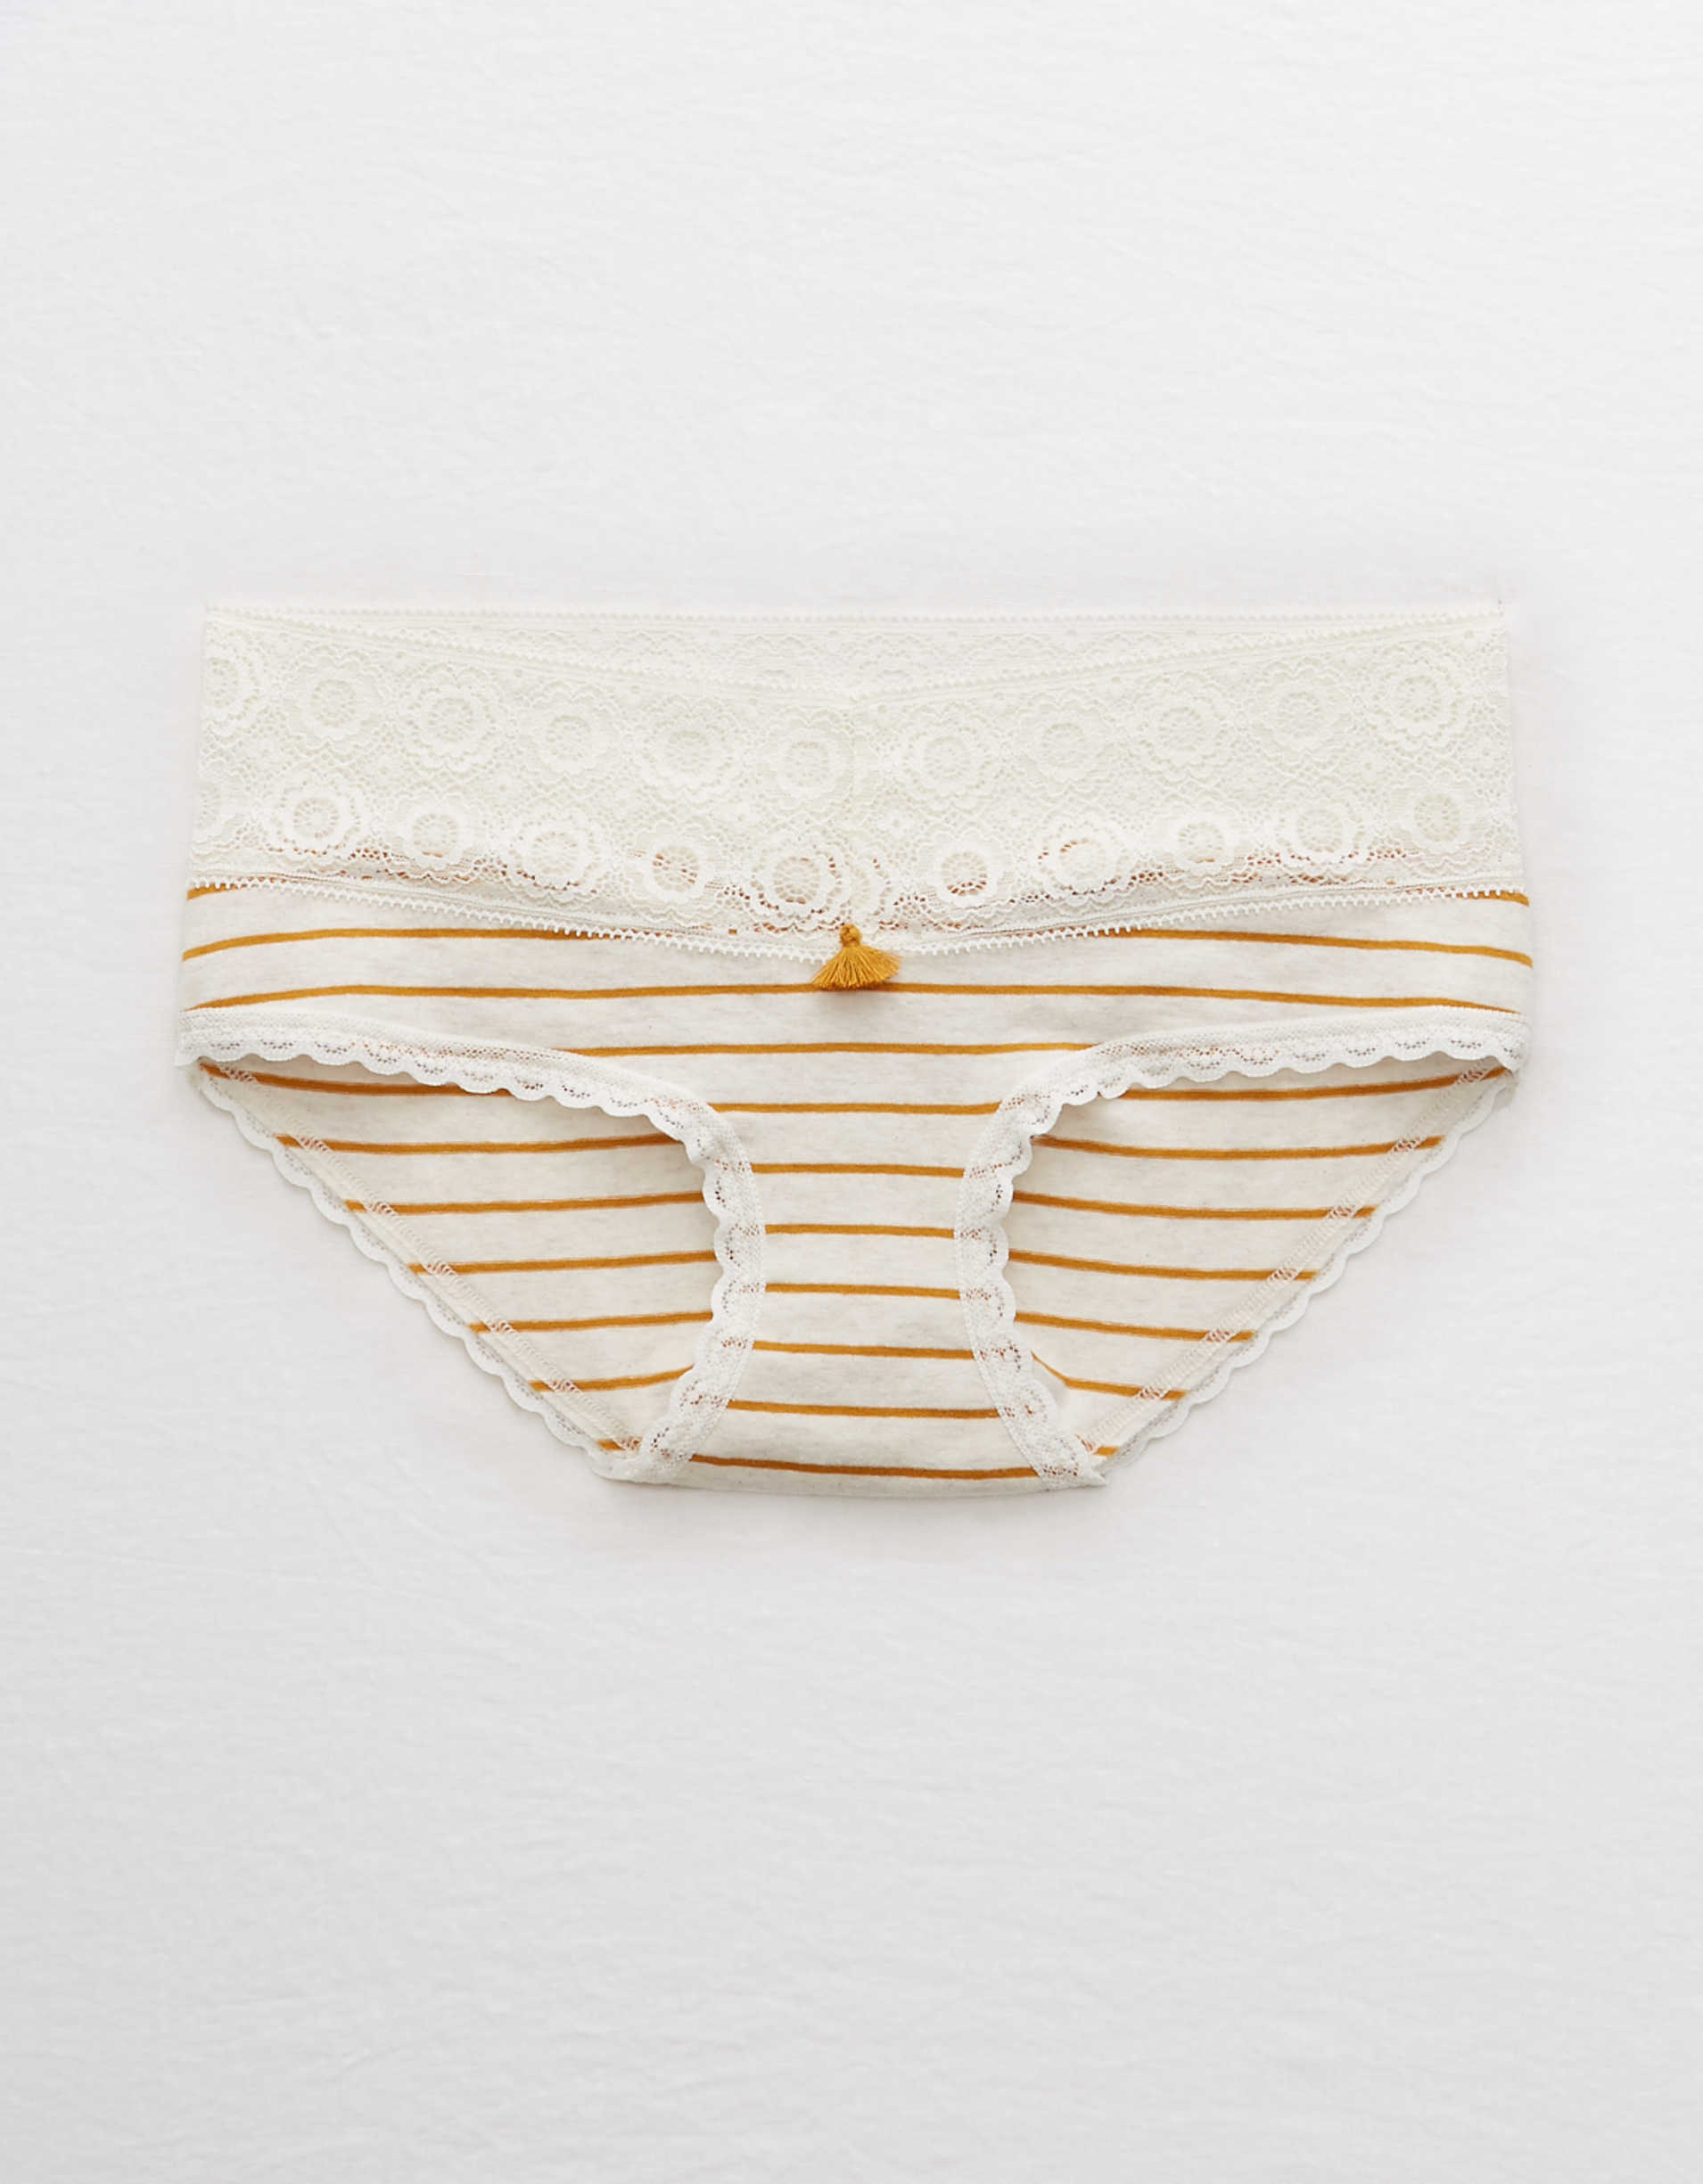 Aerie Cotton Lace Trim Boybrief Underwear